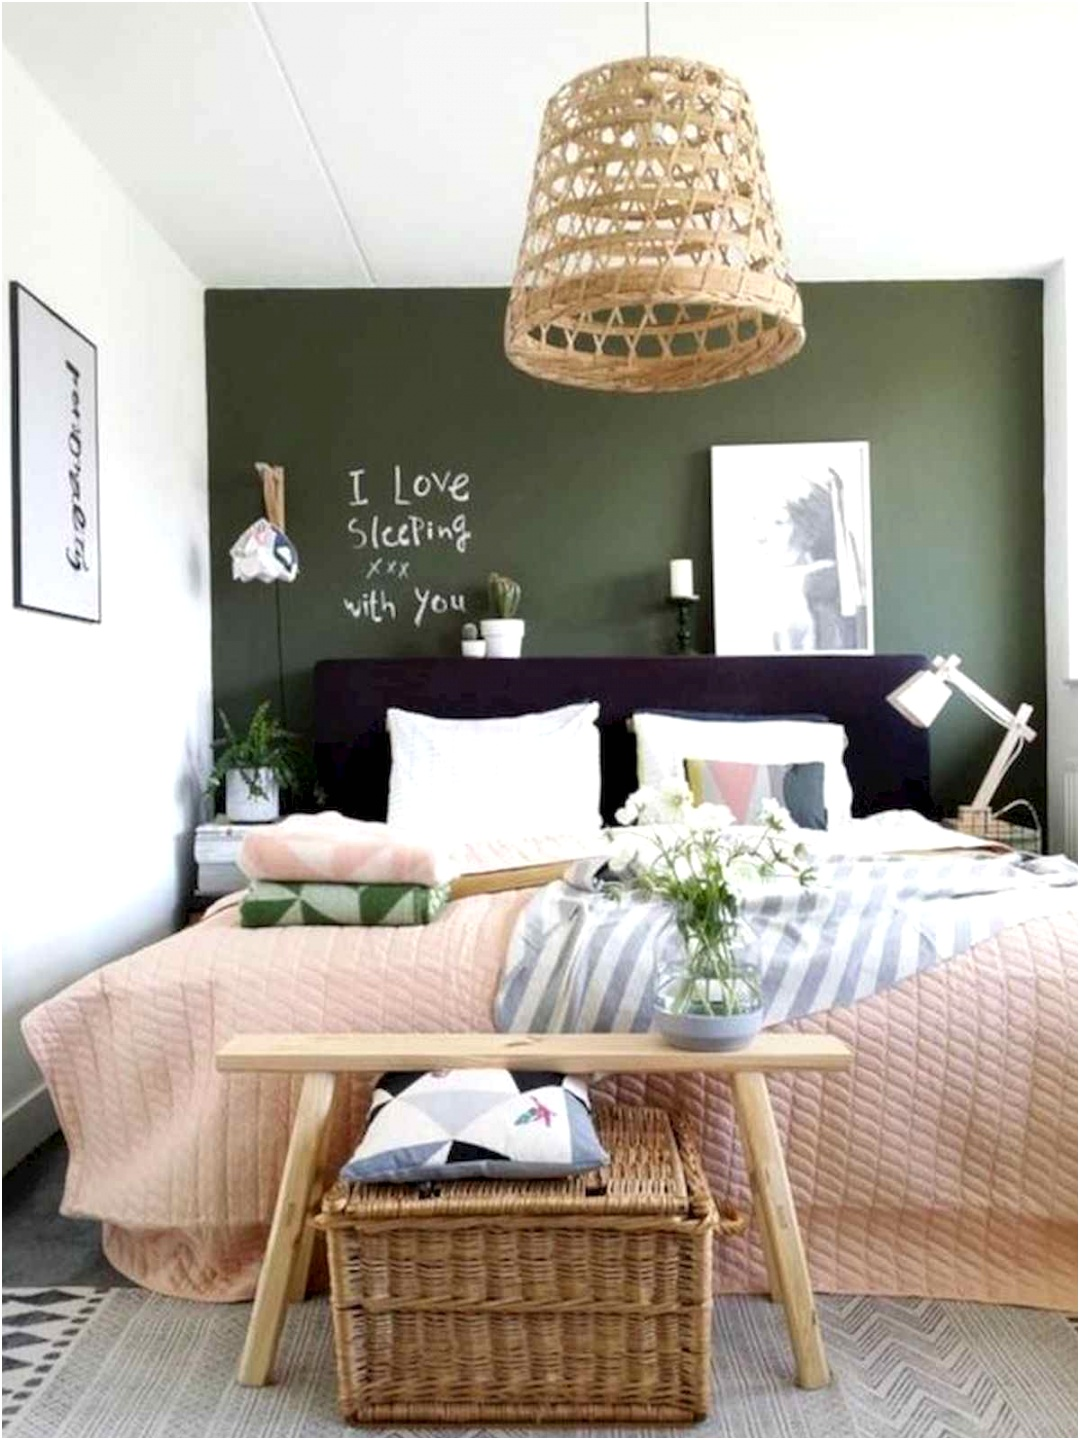 50 Stunning Small Apartment Bedroom Design Ideas and Decor 34